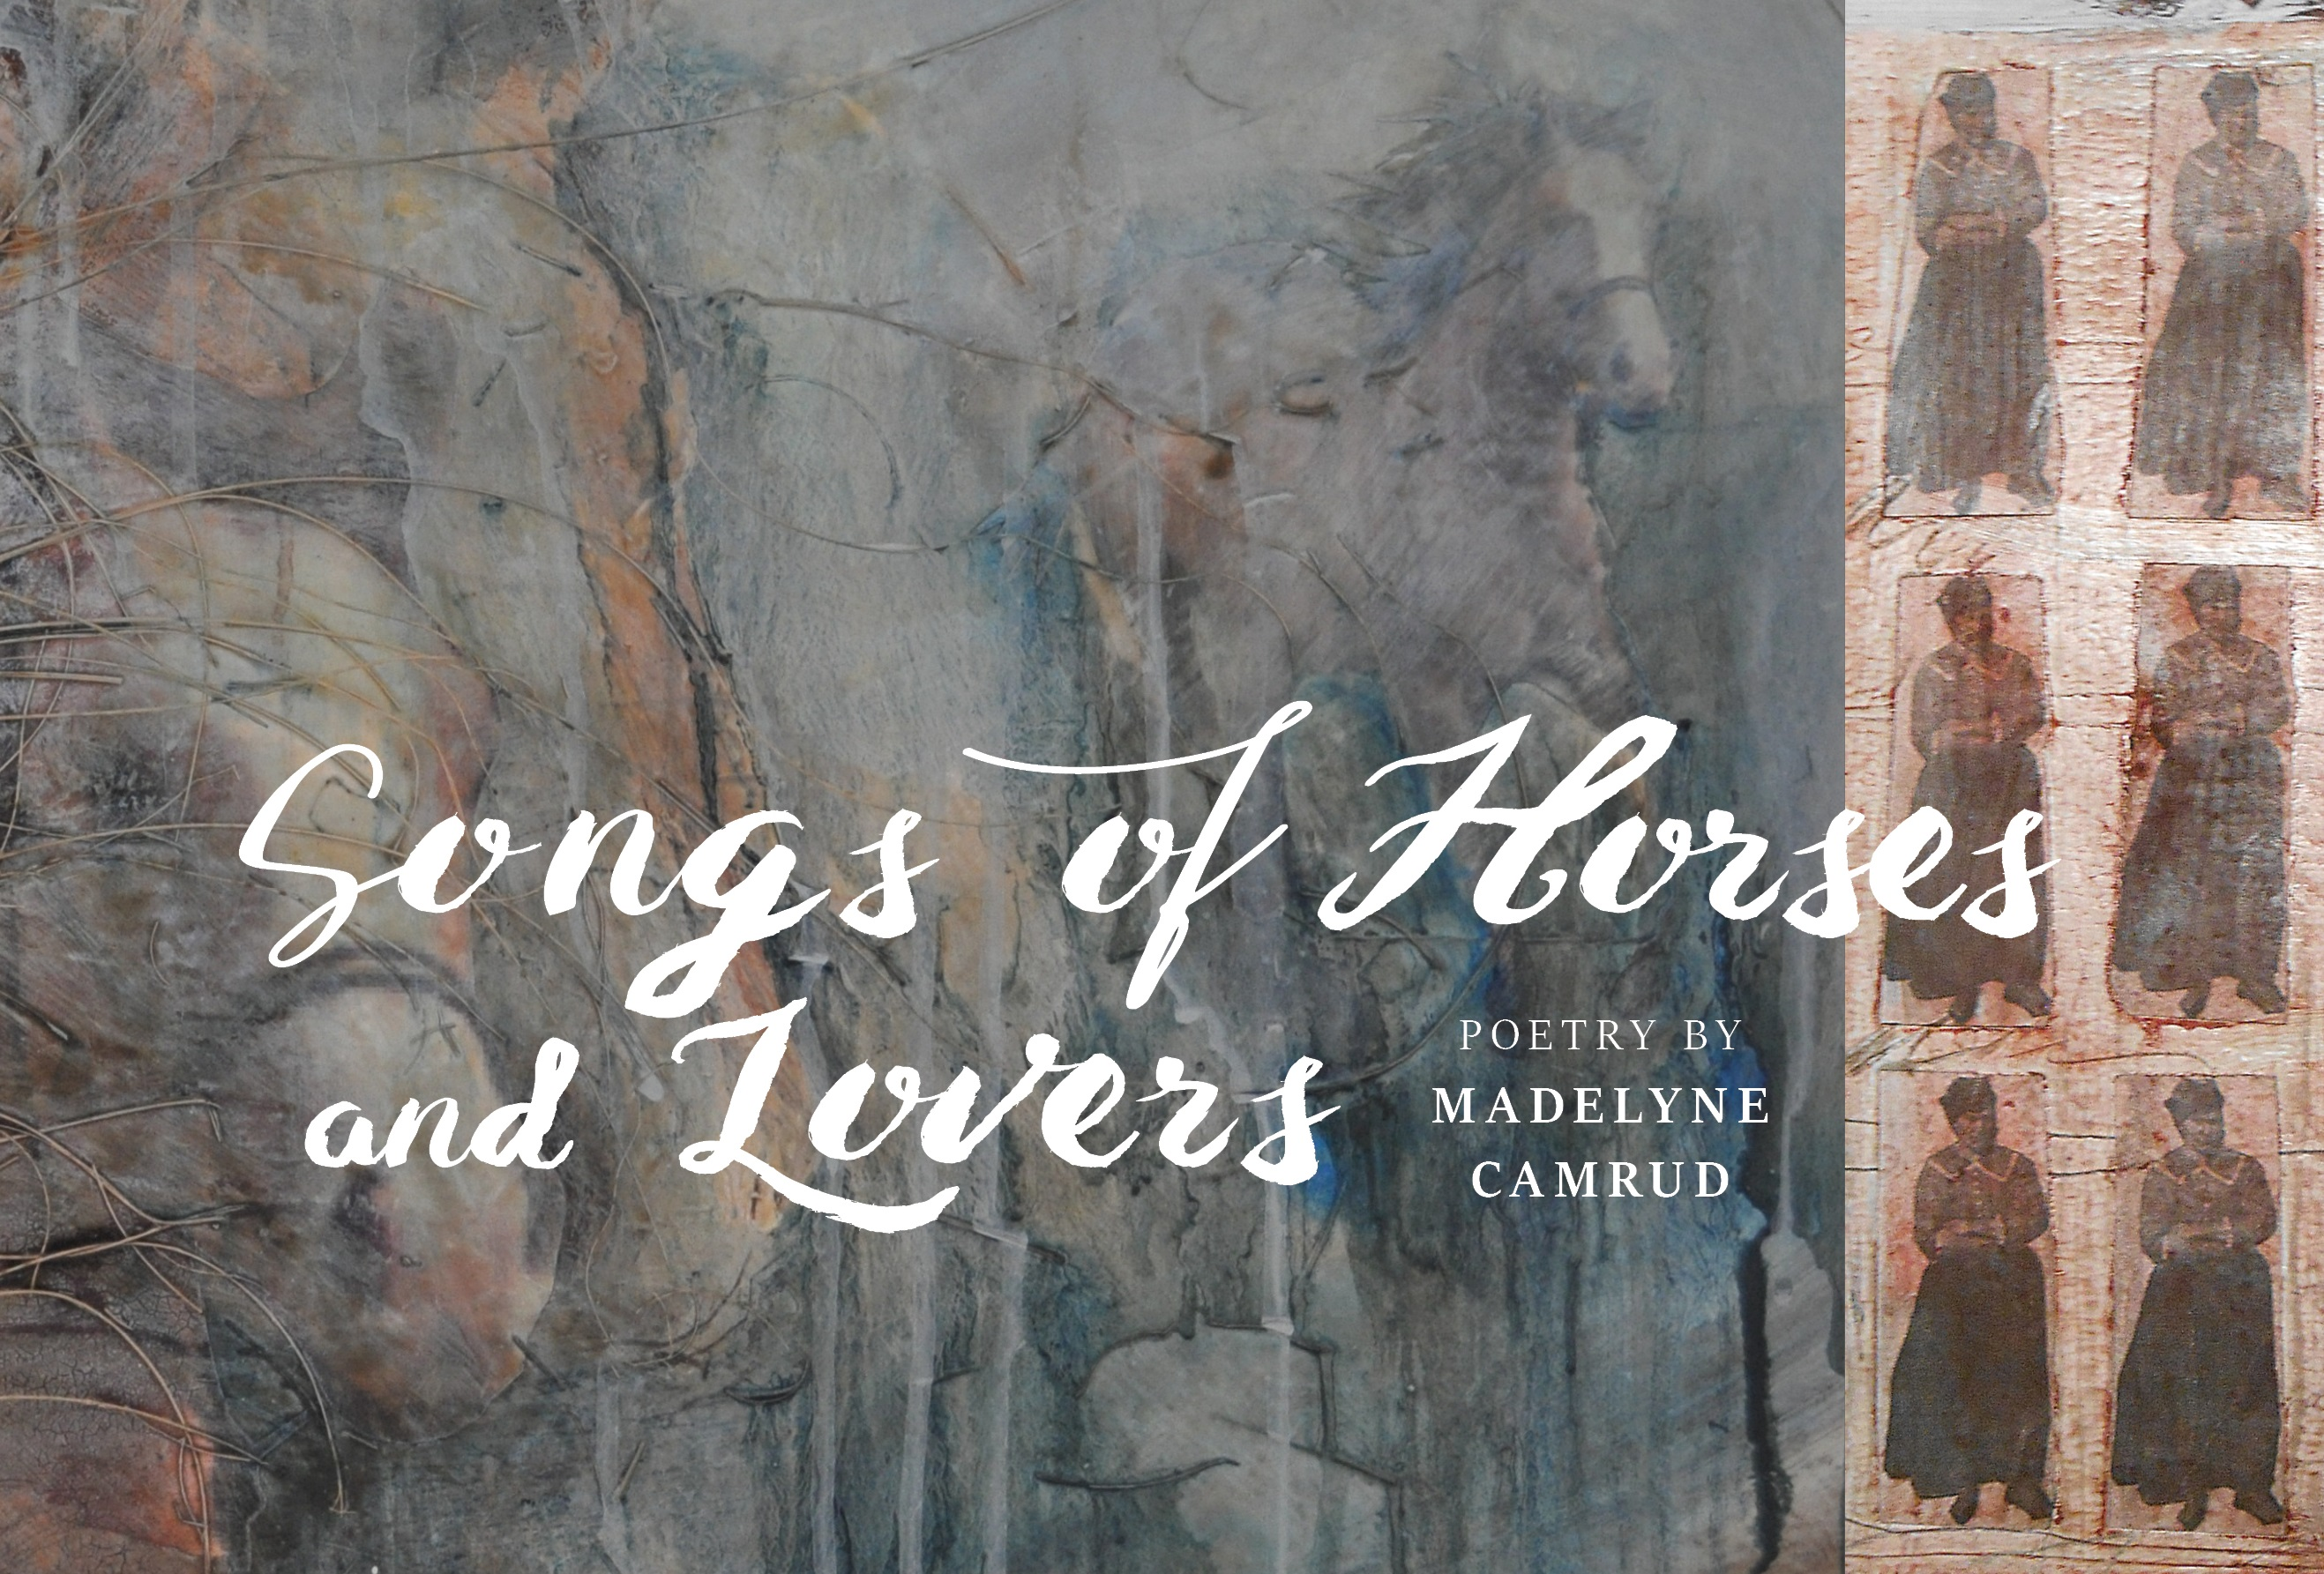 Songs of Horses and Lovers